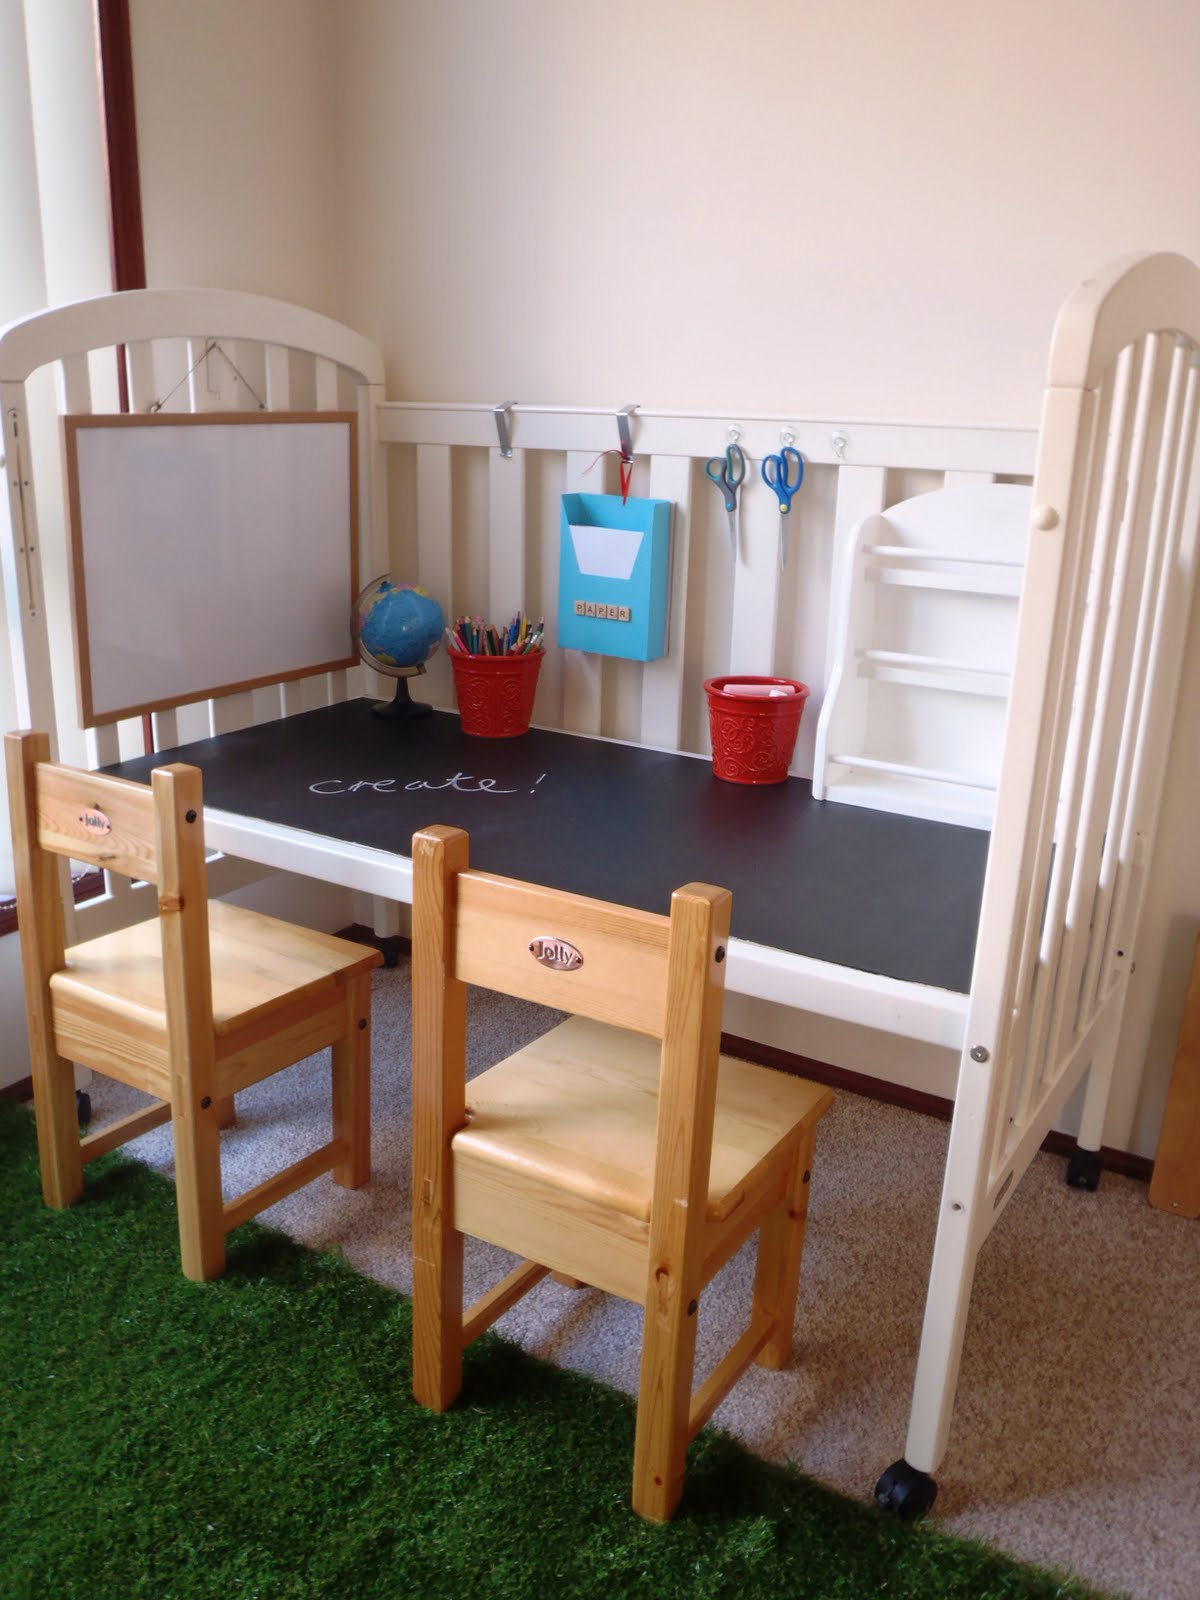 Create a work station for kids using an old crib as seen on A Little Learning for Two. See more repurposing ideas for kids rooms on Design Dazzle!